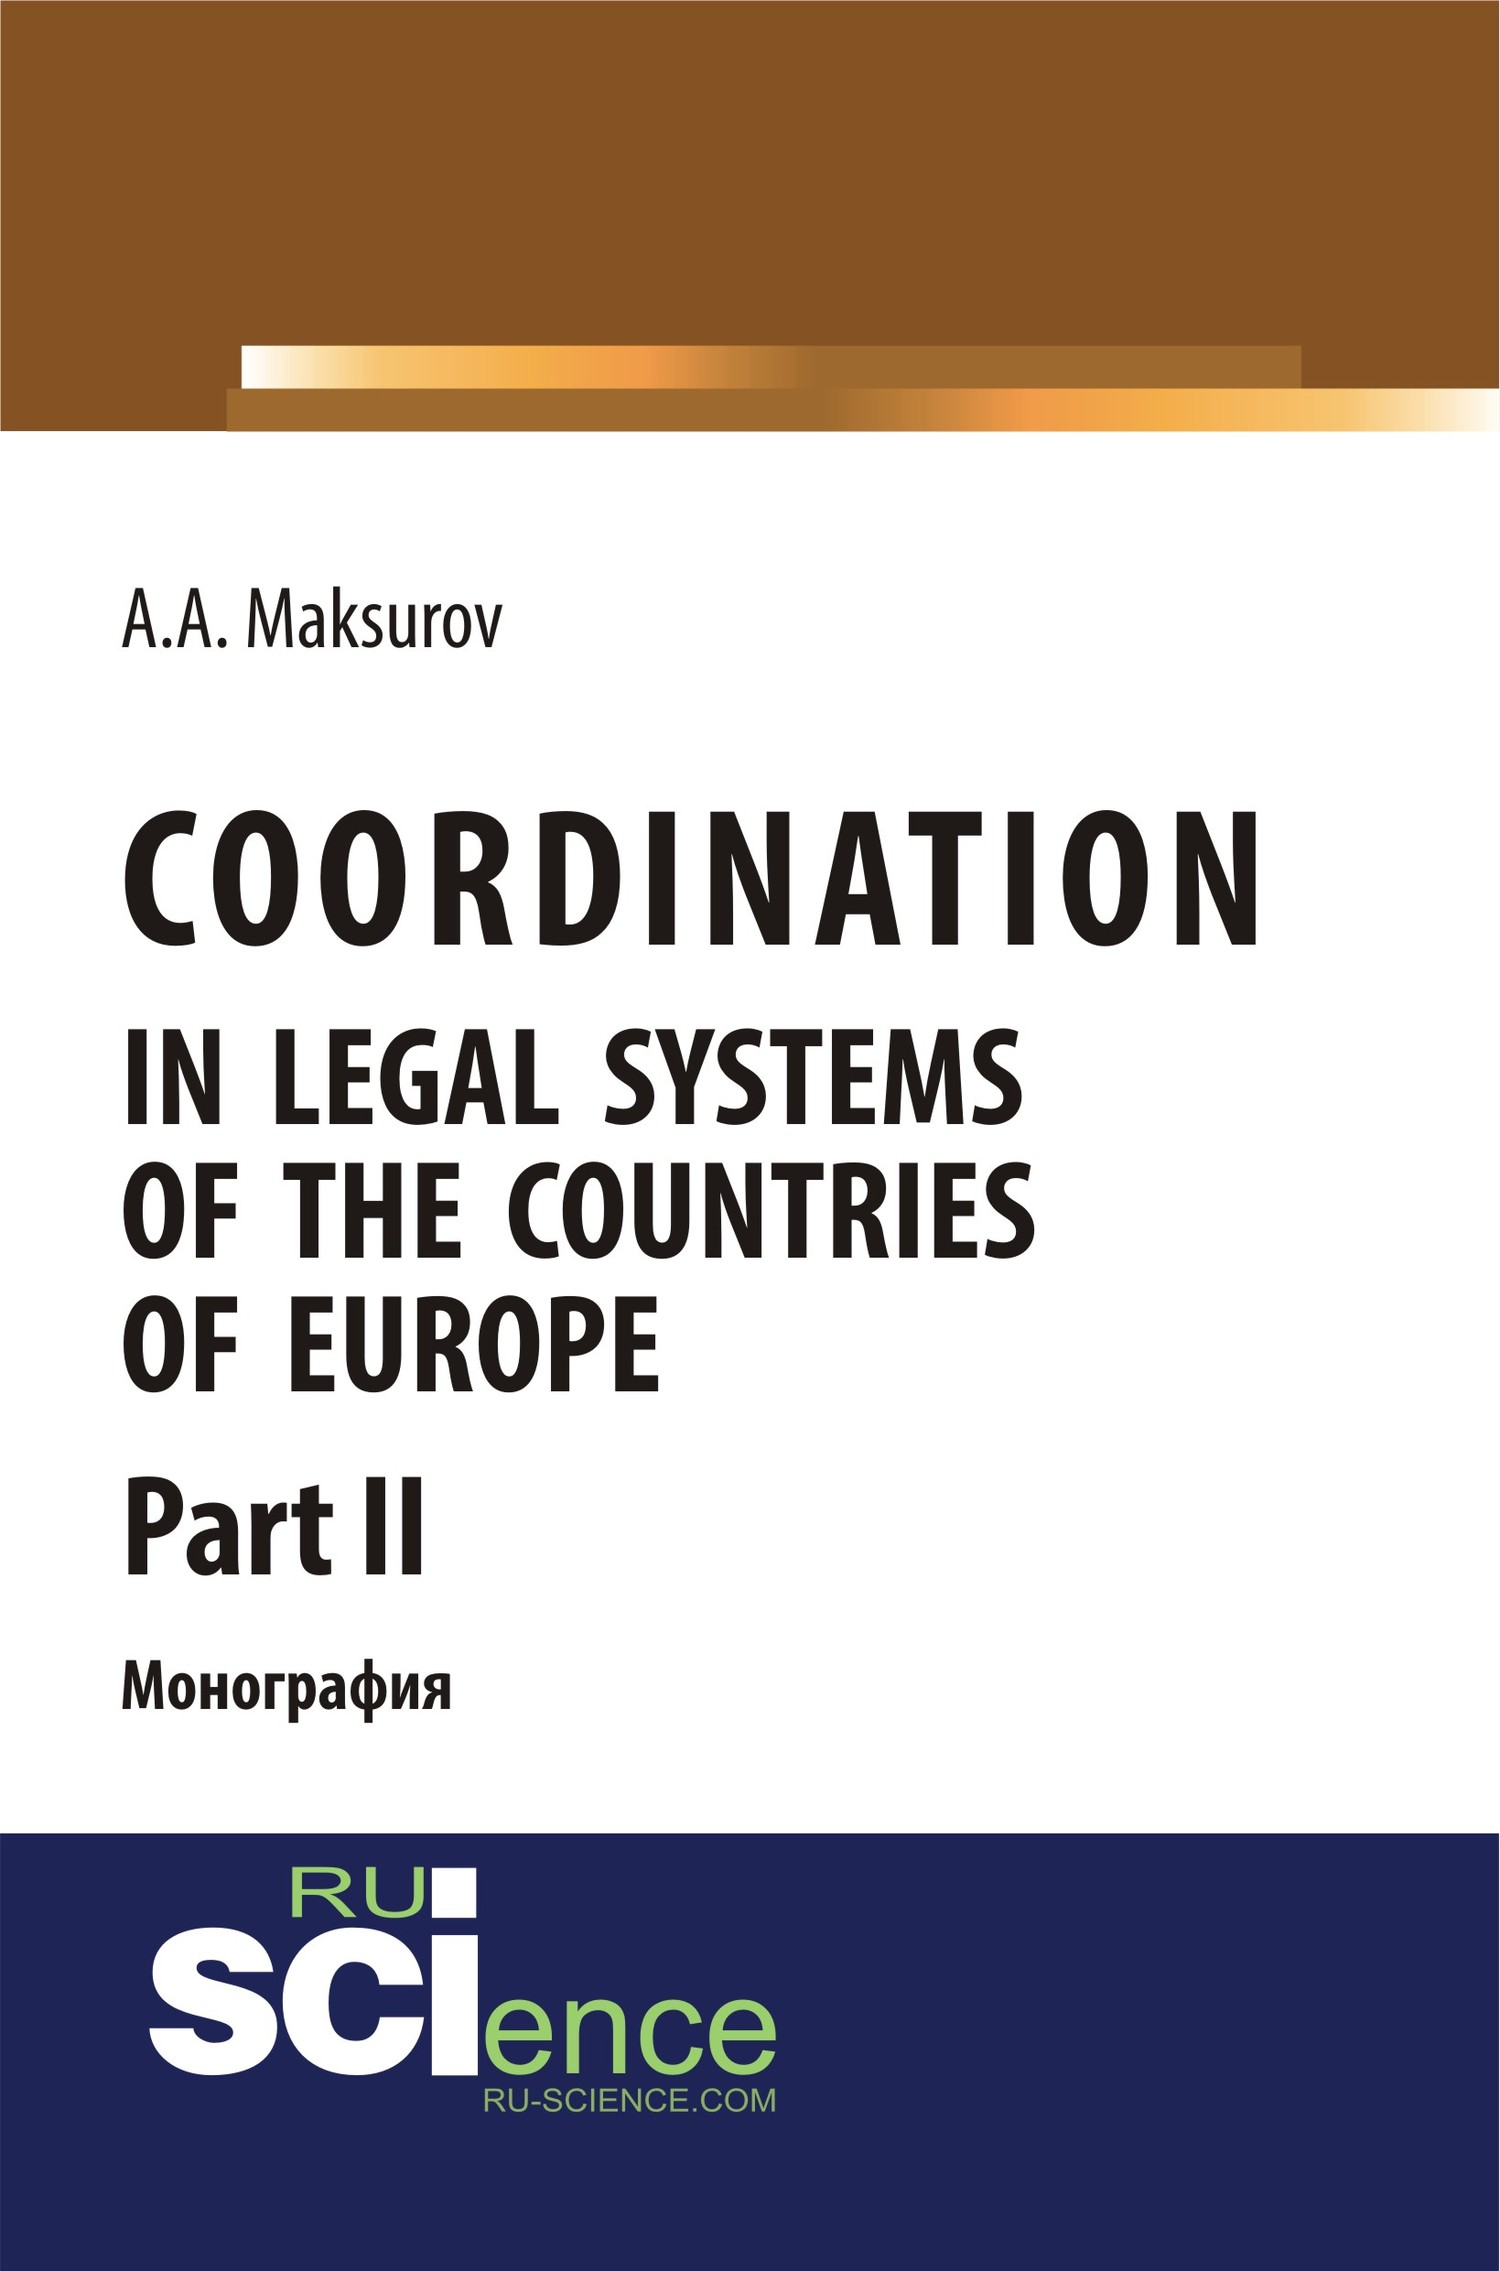 А. А. Максуров Coordination in legal systems of the countries of Europe. Part II noonan morality of abortion legal and historic al perspectives pr only